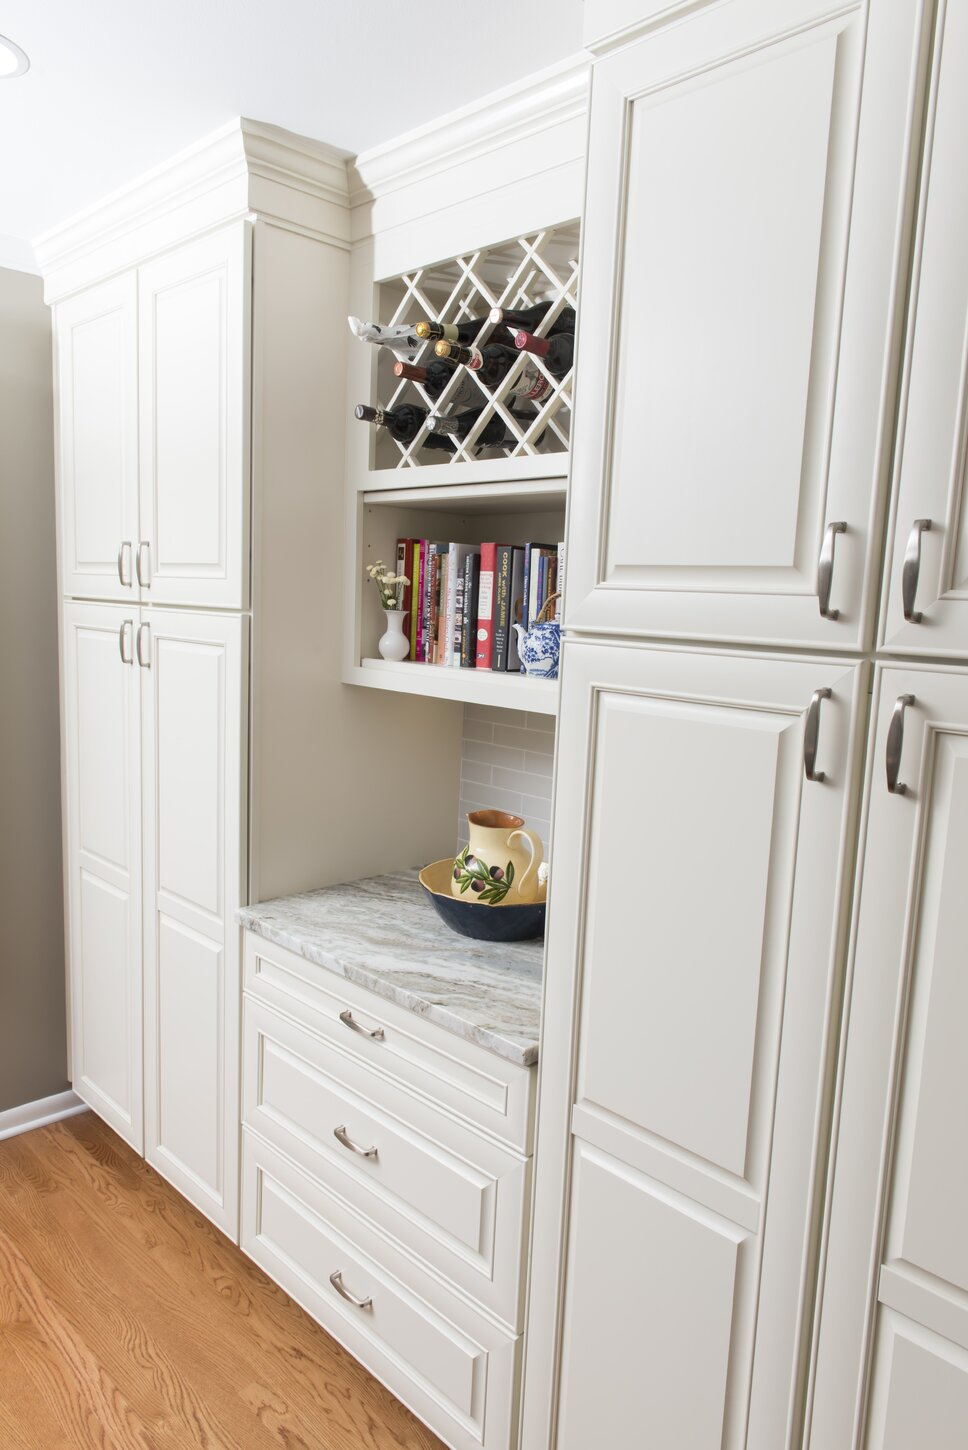 We created a beautiful area of built in pantries, separated by a wine rack and book shelves, as well as a counter space for the homeowner to plan her menus and serve a glass of wine. Contemporary Kitchen design